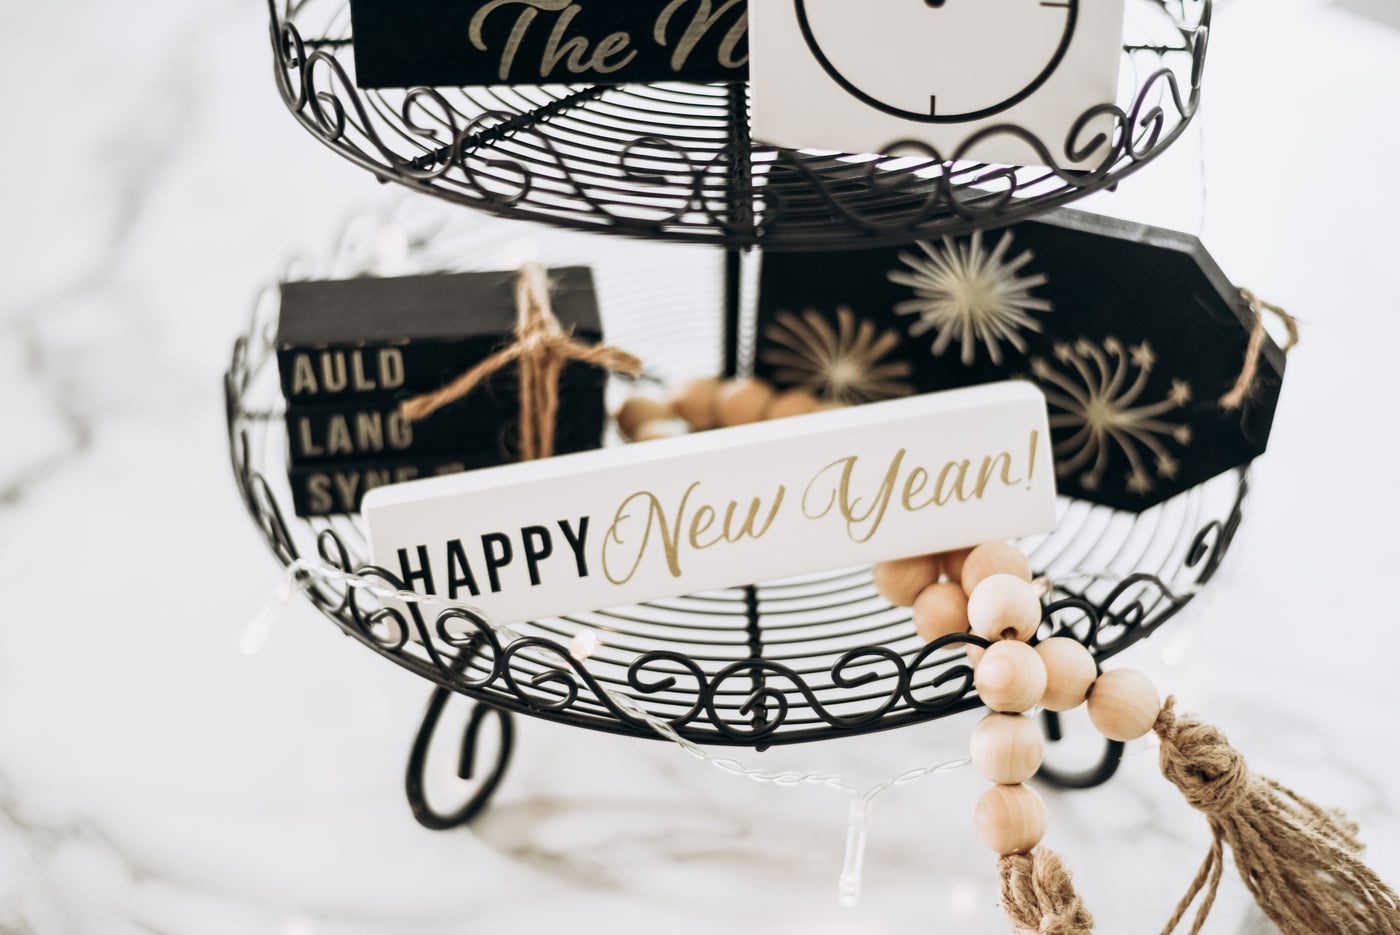 Ring In The New Year With A New Tiered Tray DIY Kit!